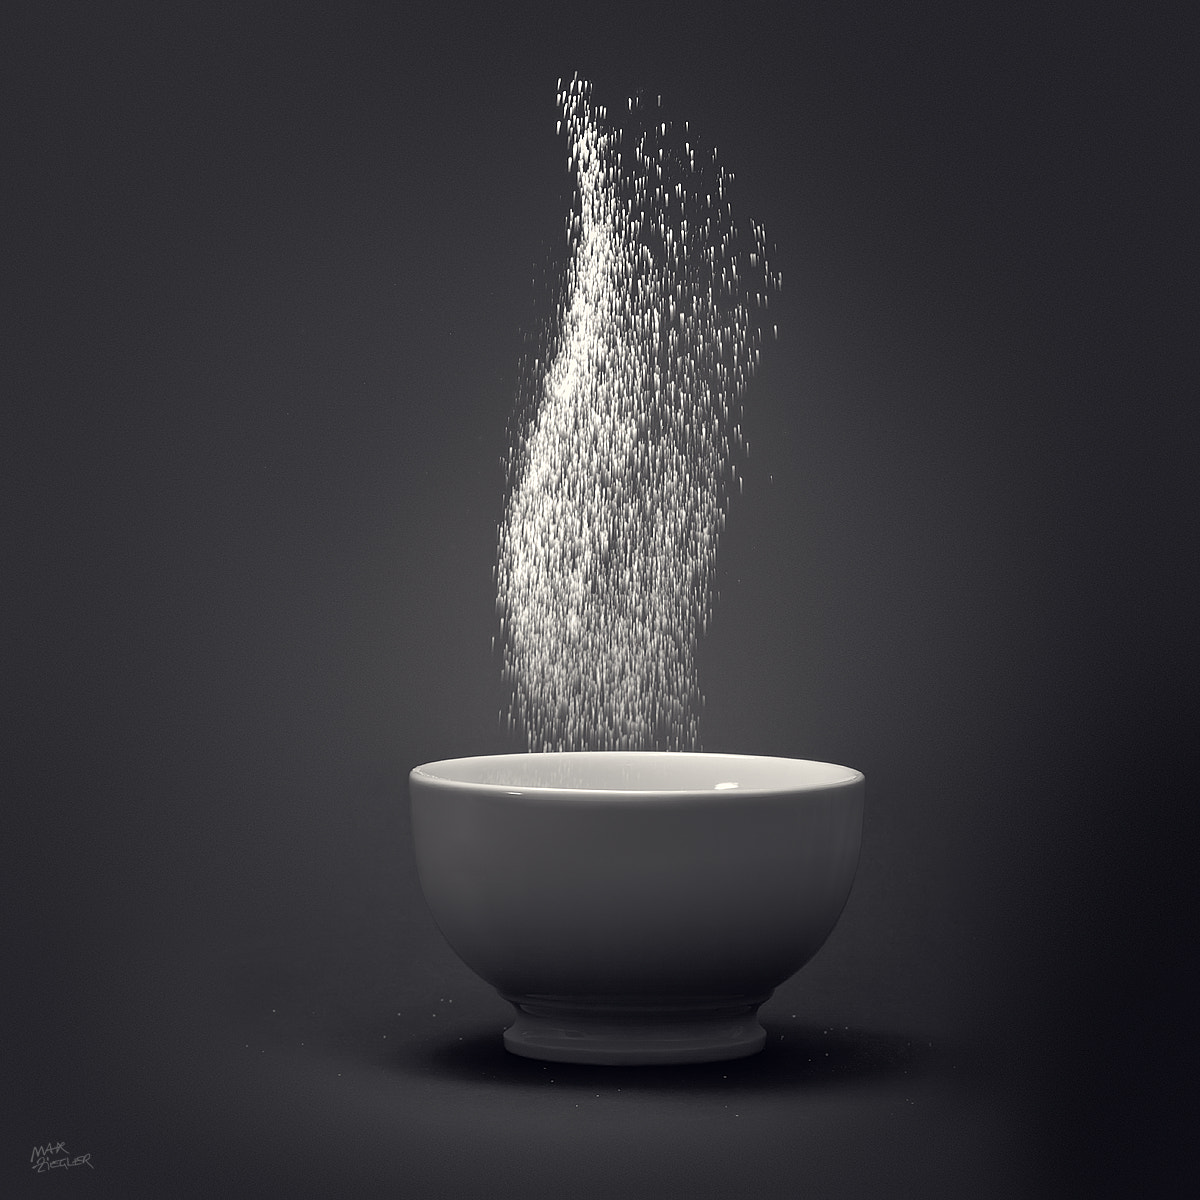 Photograph salt b&w by Max Ziegler on 500px